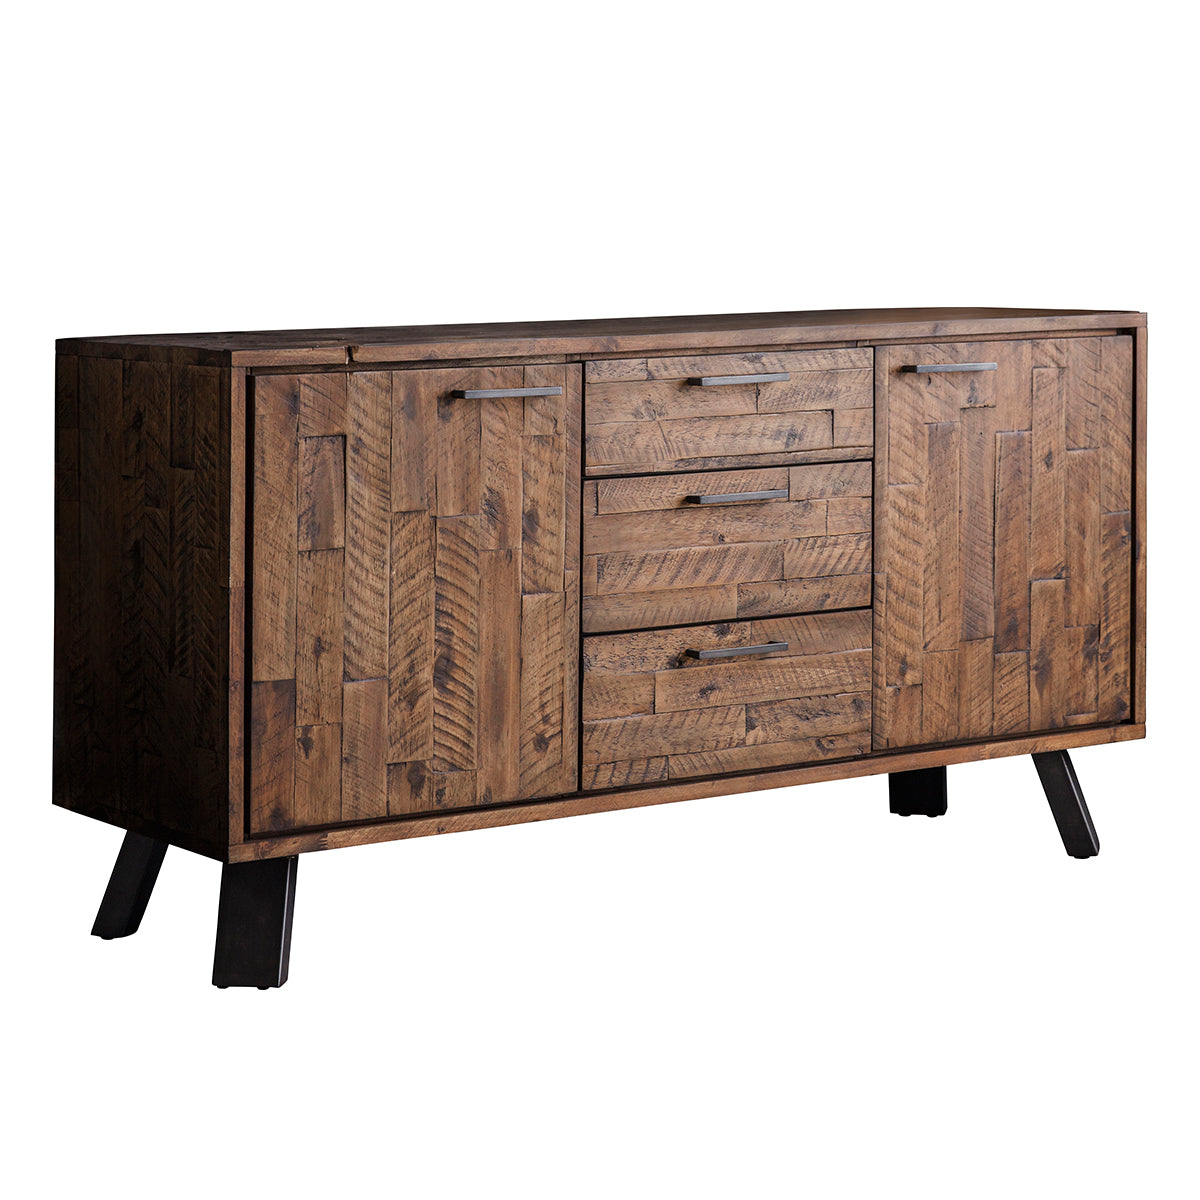 Somers 2 door 3 Drawer Sideboard Rustic - Ezzo